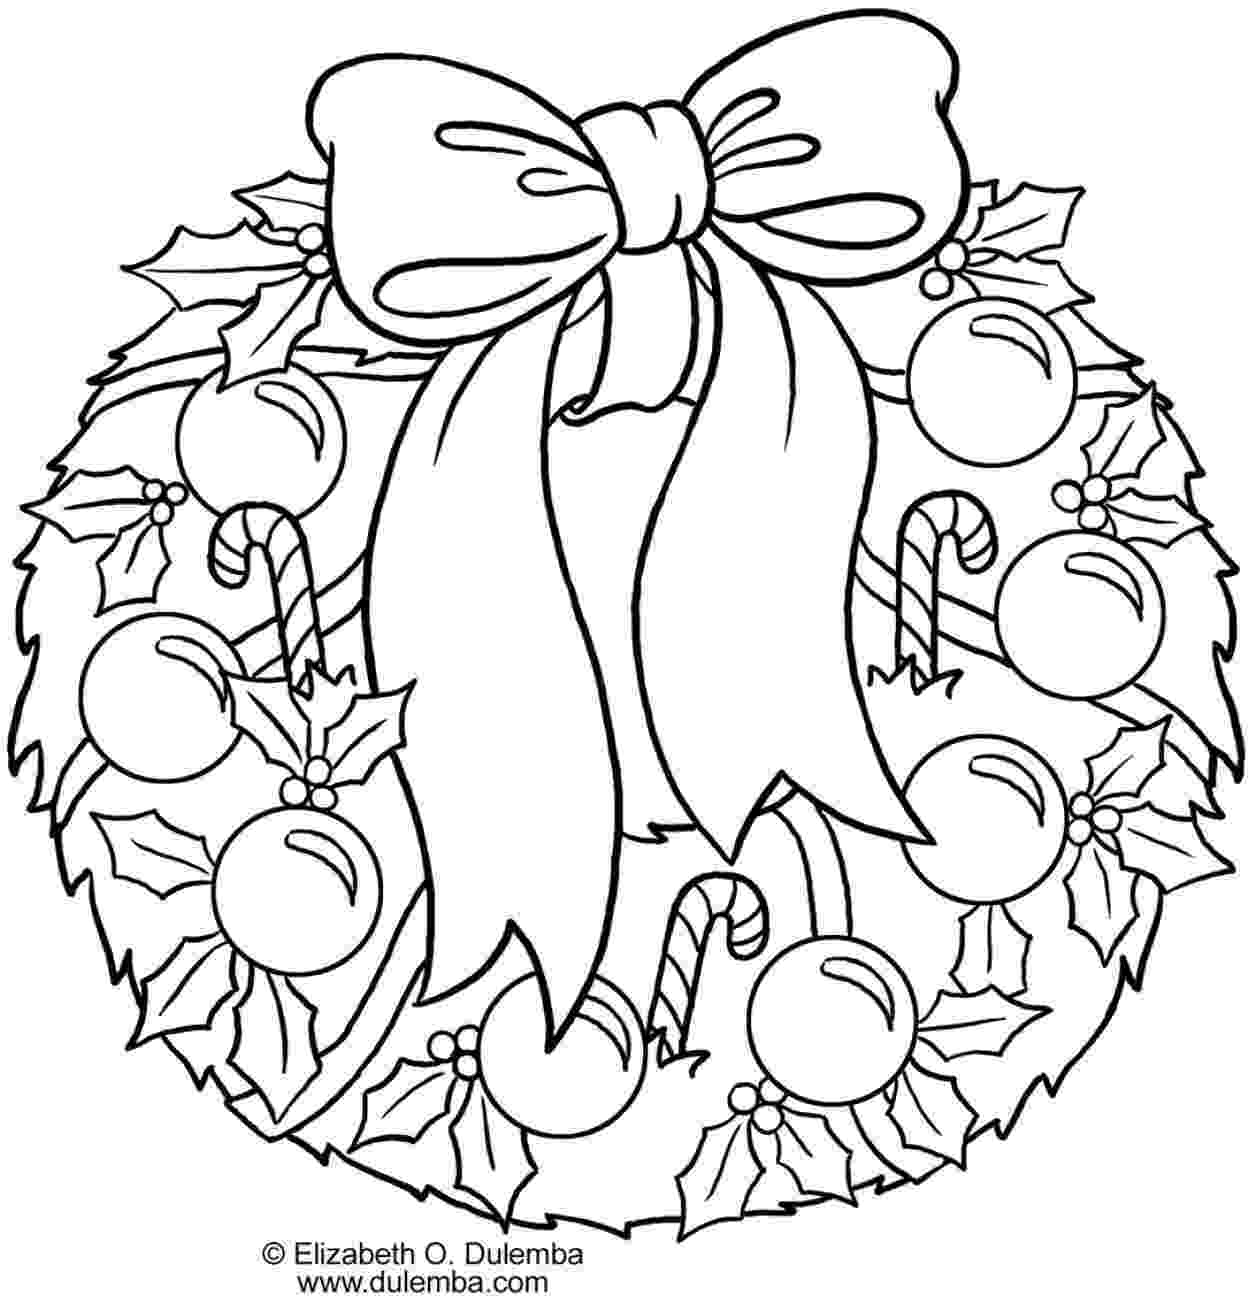 holly coloring pages christmas holly coloring pages getcoloringpagescom holly pages coloring